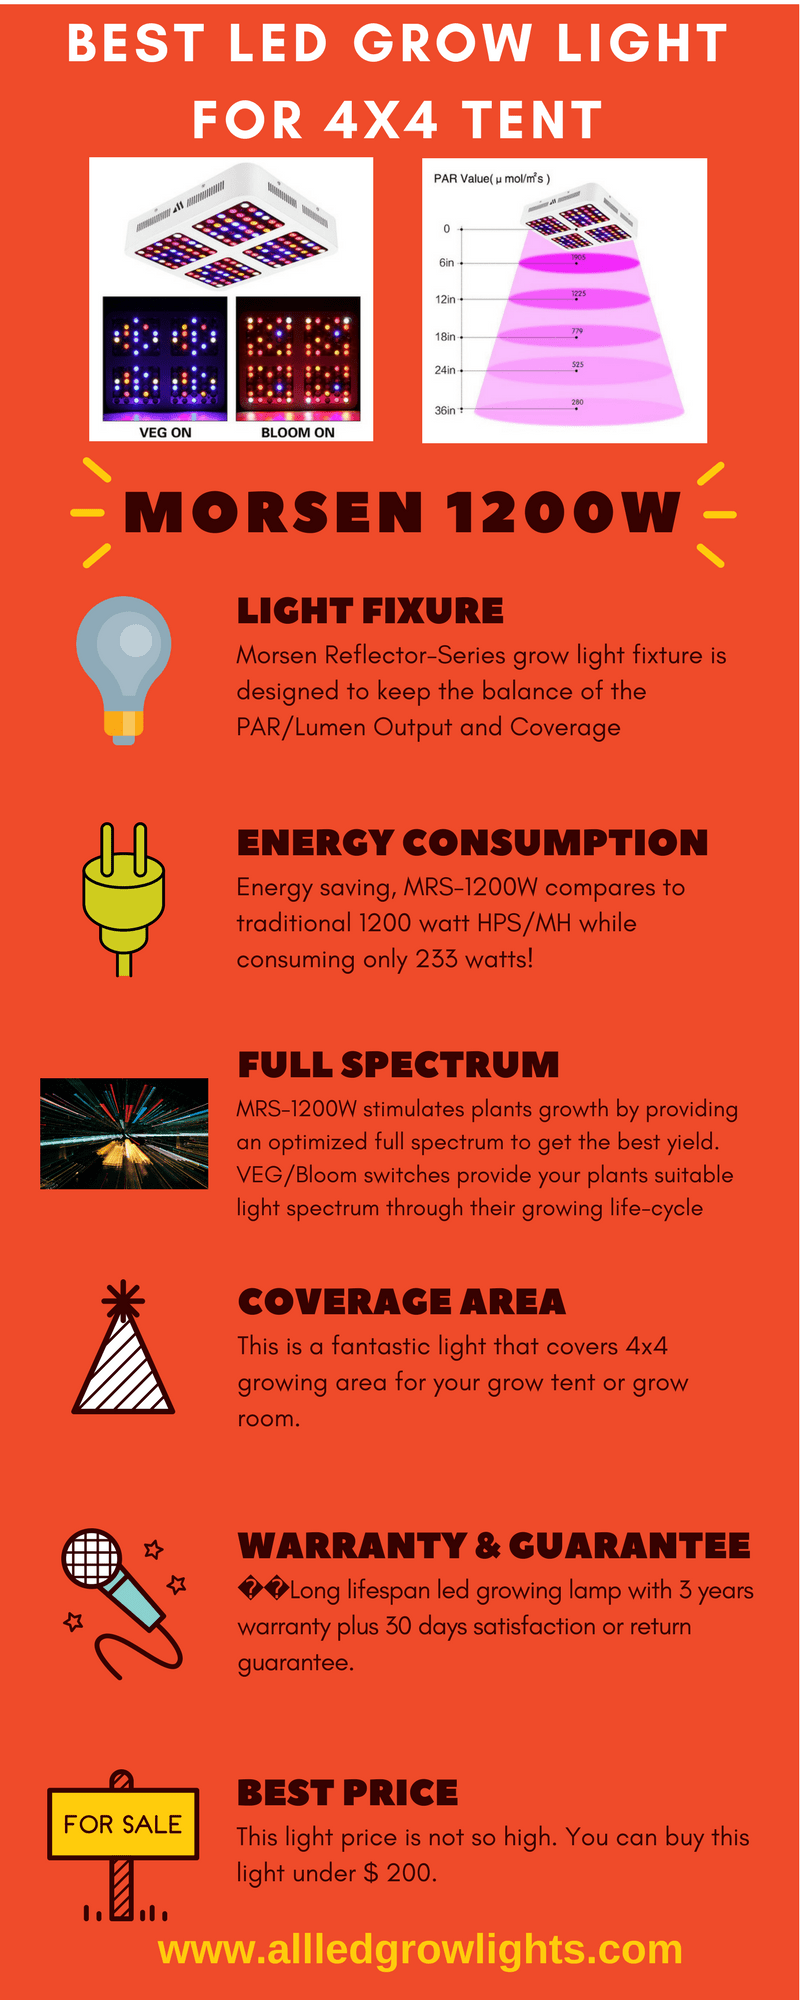 best led light for 4x4 tent infograph